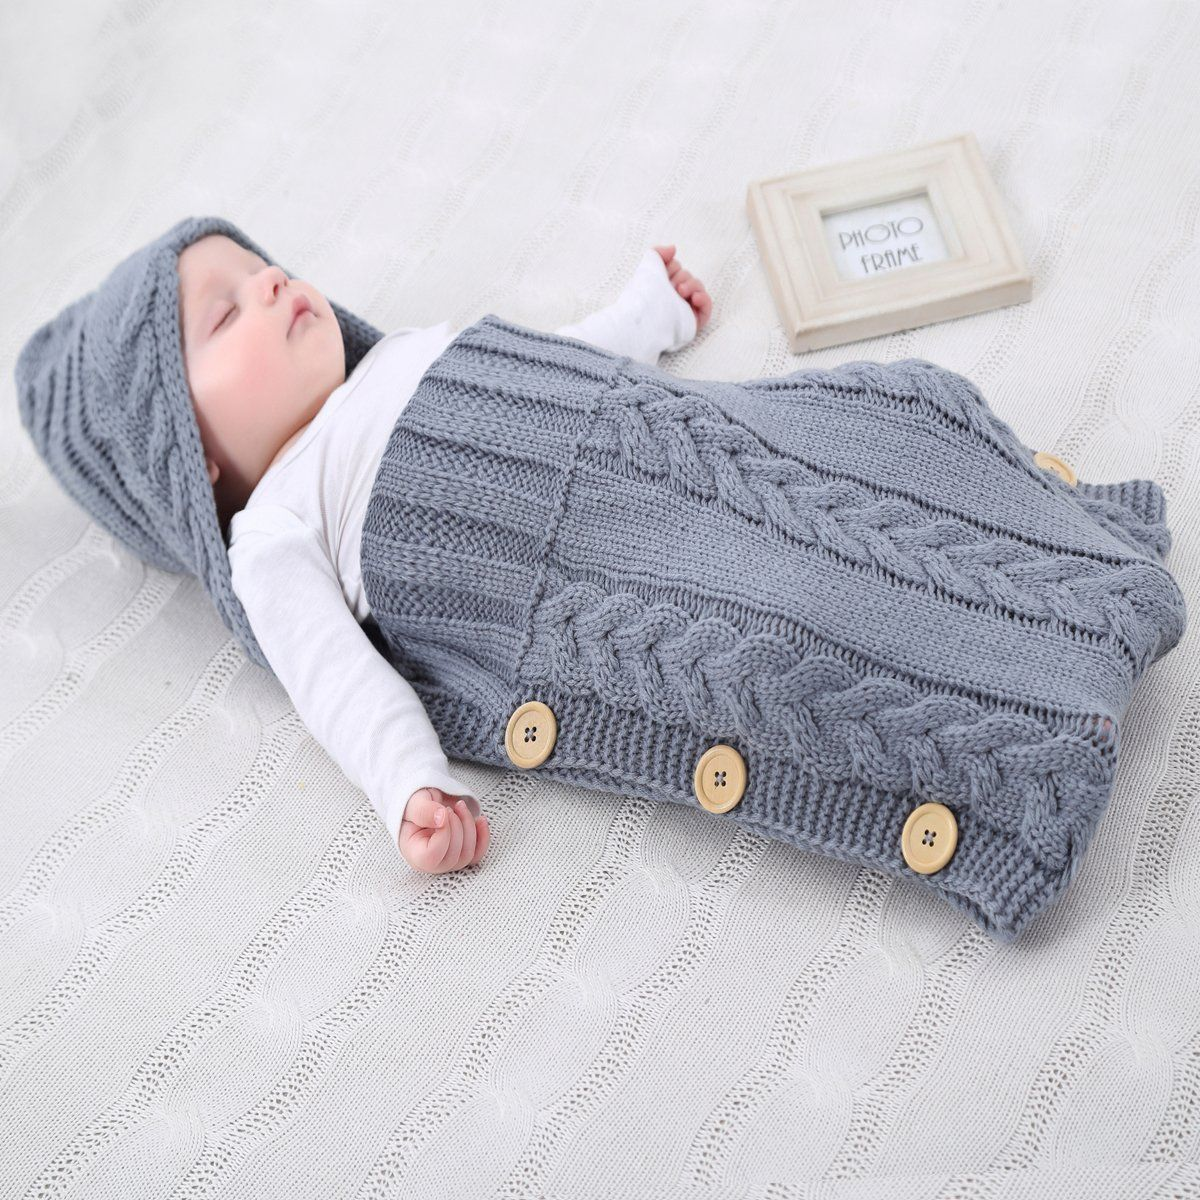 neugeborenes babydecke wrap swaddle decke soonhua baby kinder kleinkind wolle knit decke. Black Bedroom Furniture Sets. Home Design Ideas